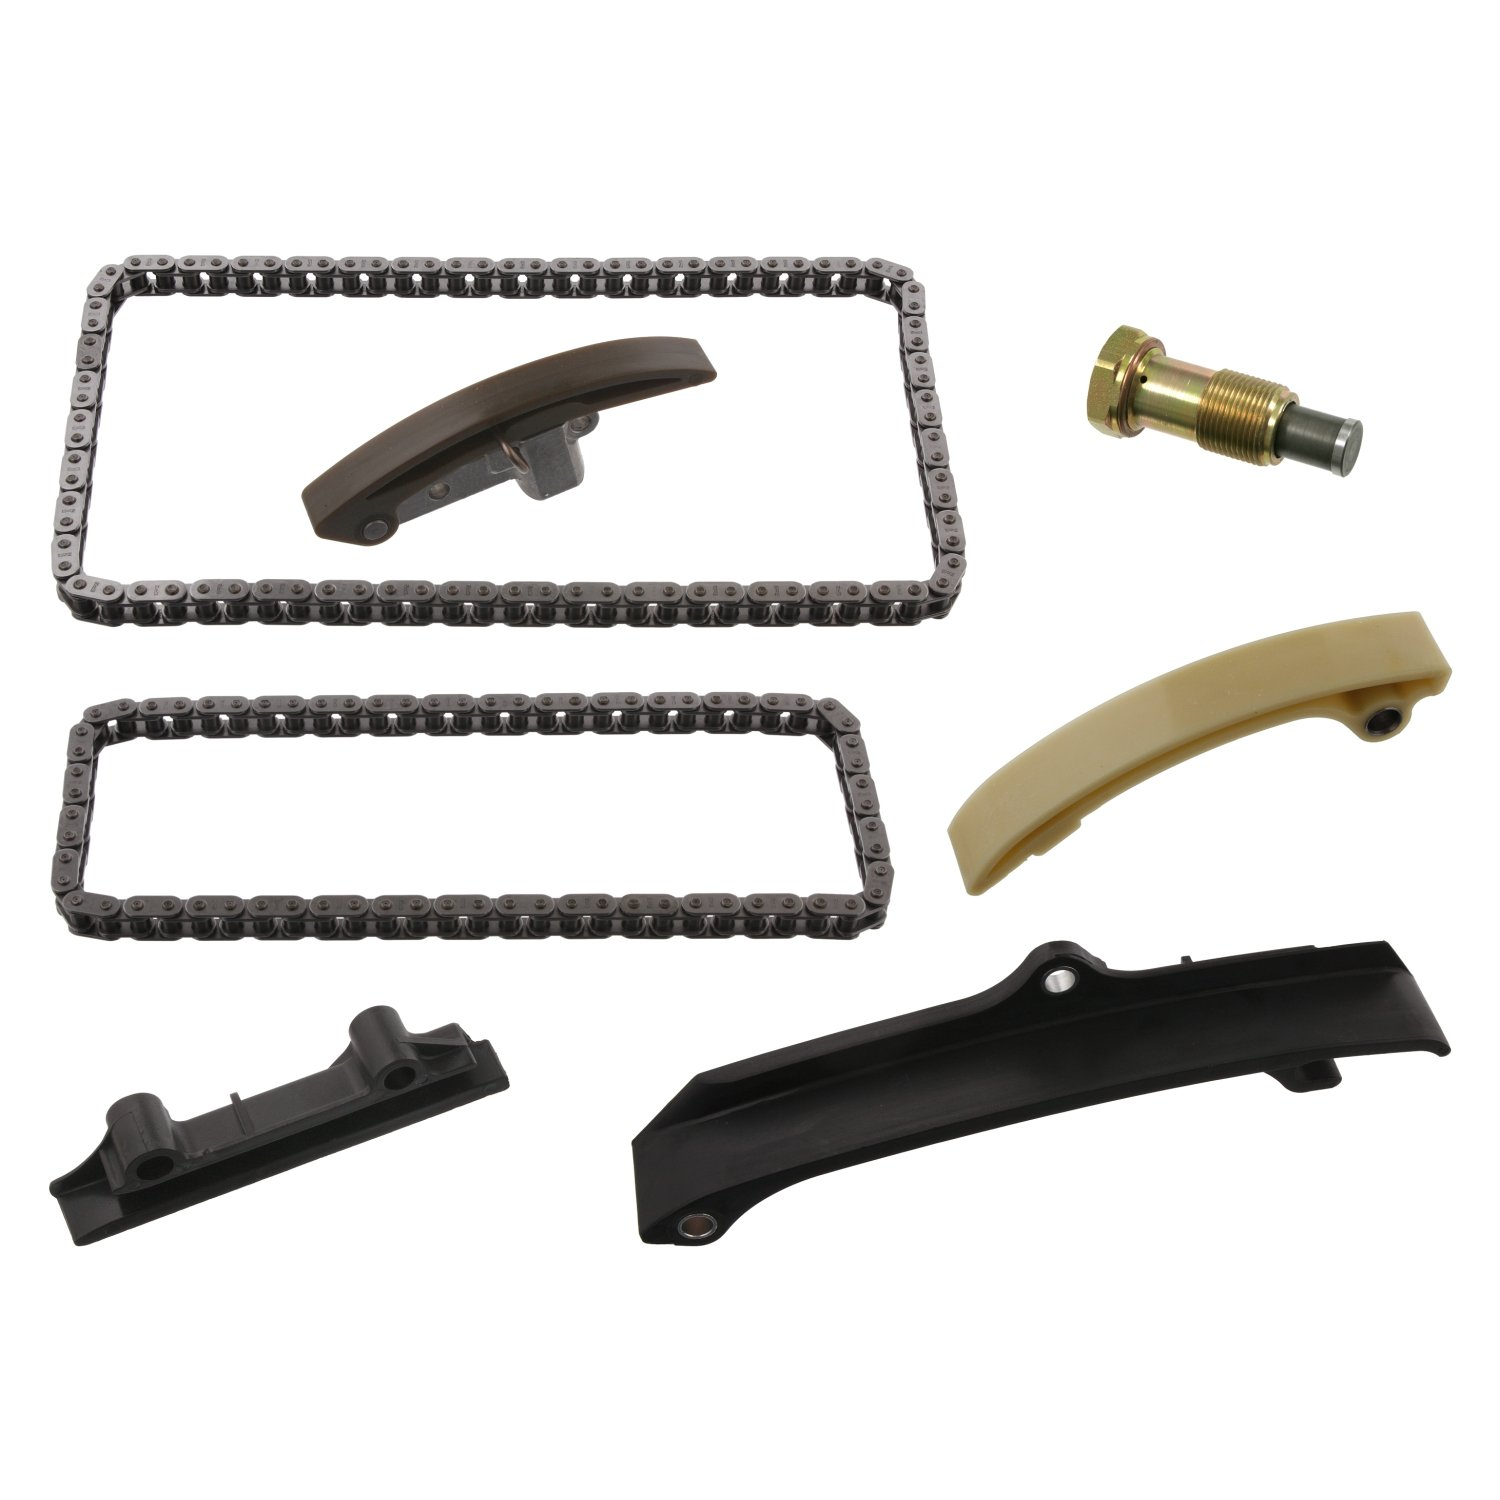 febi bilstein 33985 timing chain kit with runners and chain tensioner - Pack of 1